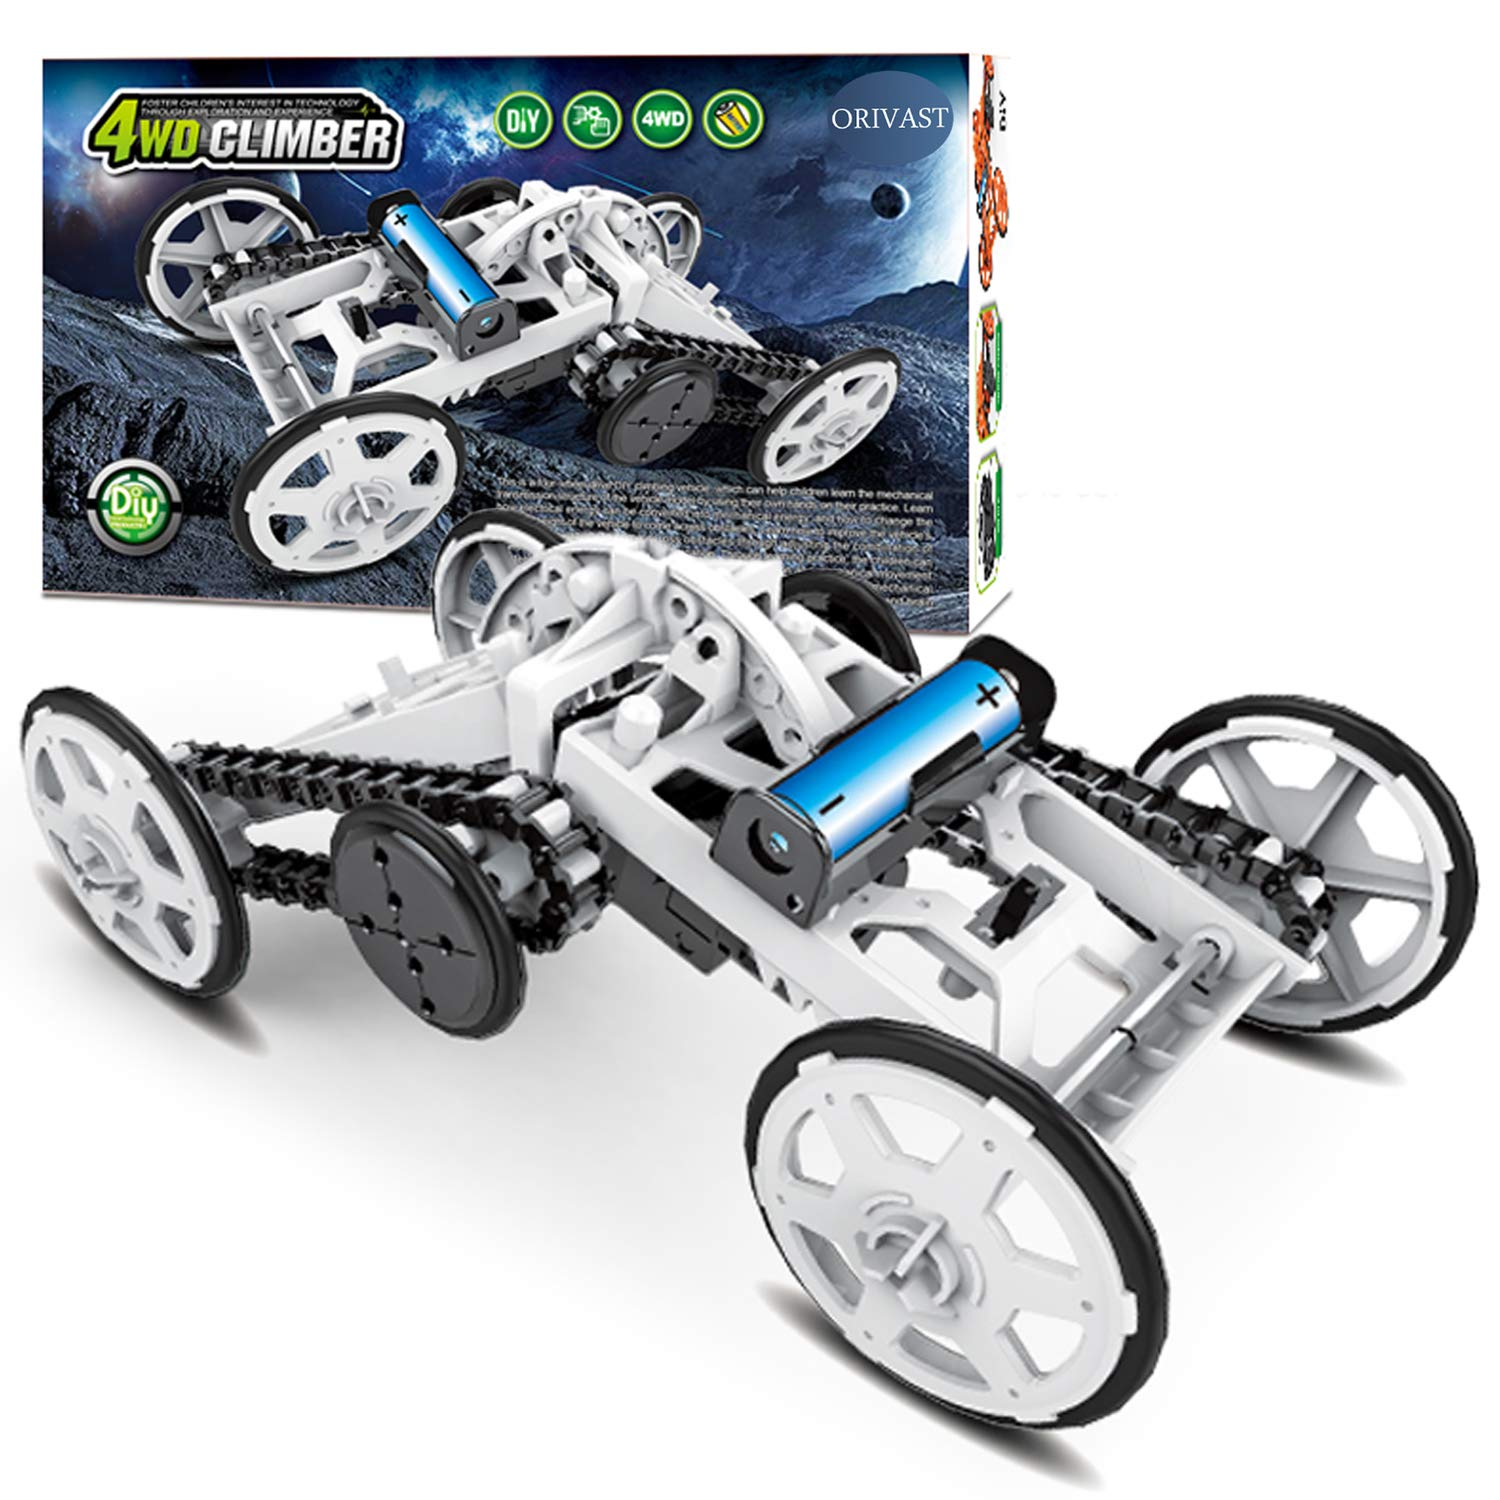 DIY STEM Toys for Boys and Girls ORIVAST Science Kits for Kids 4WD Climbing Vehicle STEM Kit Electronics Circuits Engineering and Science Experiments for Kids and Teens